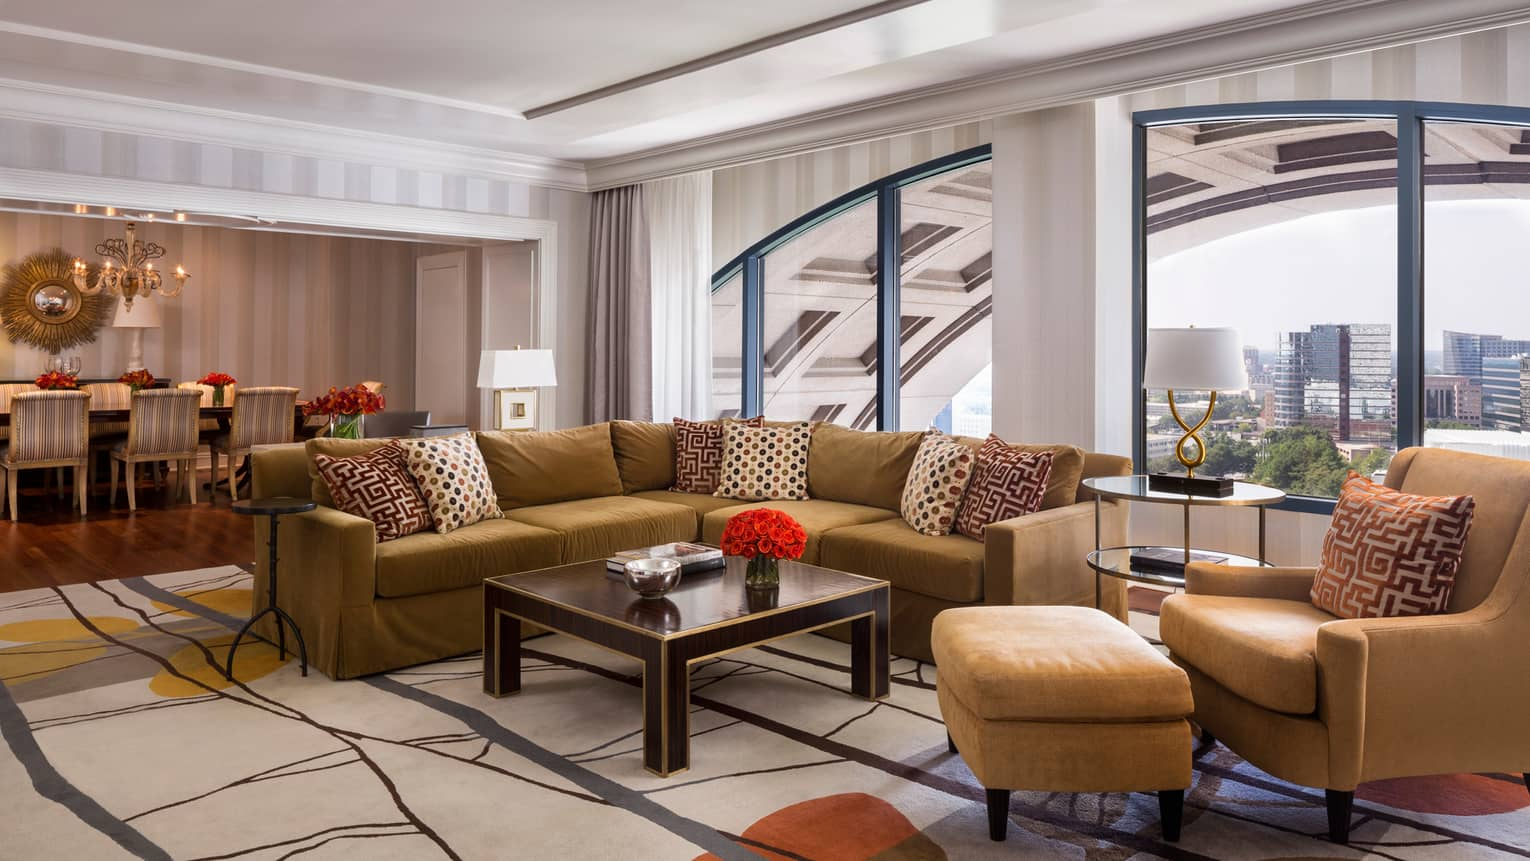 Presidential Suite gold L-shaped sofa, armchairs, dining room by large picture window